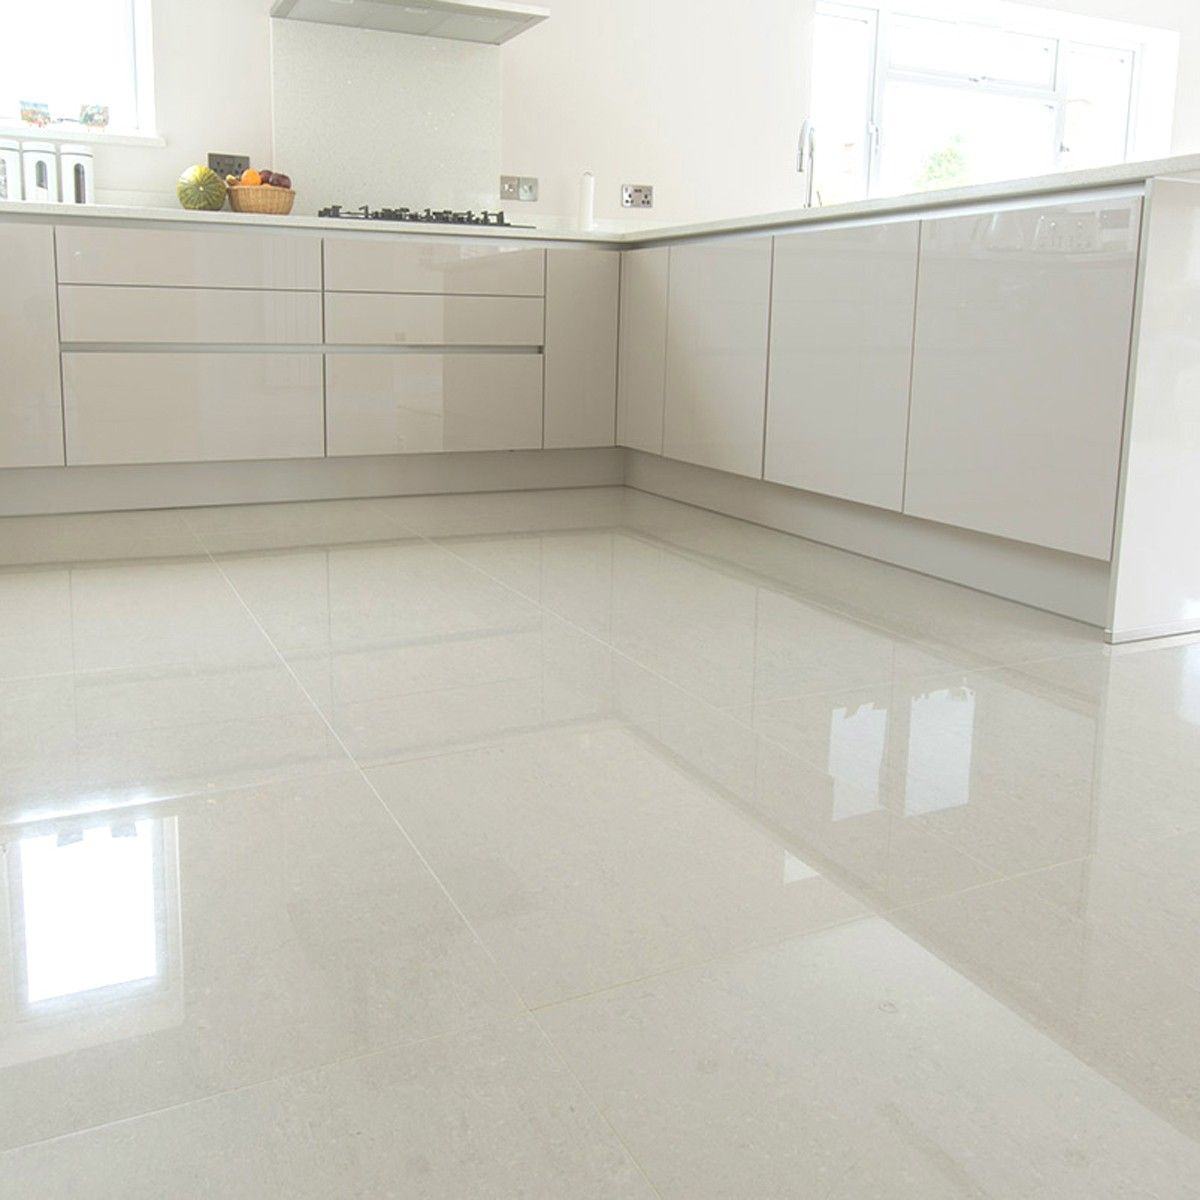 Tile Flooring For Kitchen: 60x60cm Super Polished Ivory Porcelain